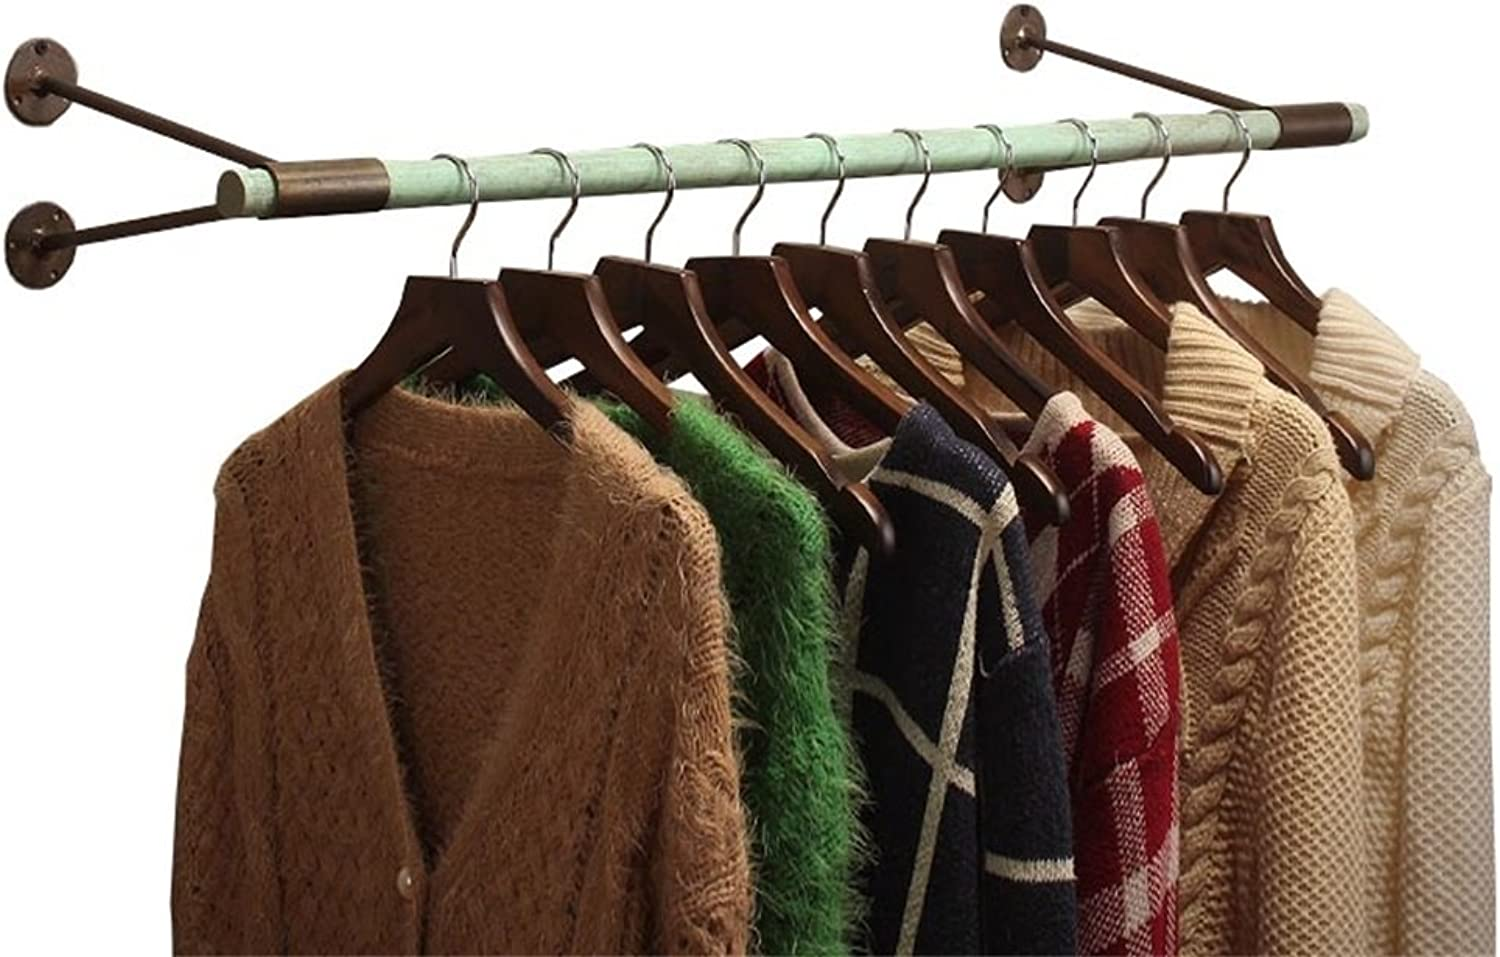 LAXF- Coat Racks Free Standing Wooden Wood Iron Wall Coat Rack Hangers Clothing Display Stand for Cloakroom Clothing Store White Easy to Install (Size   60ccm)